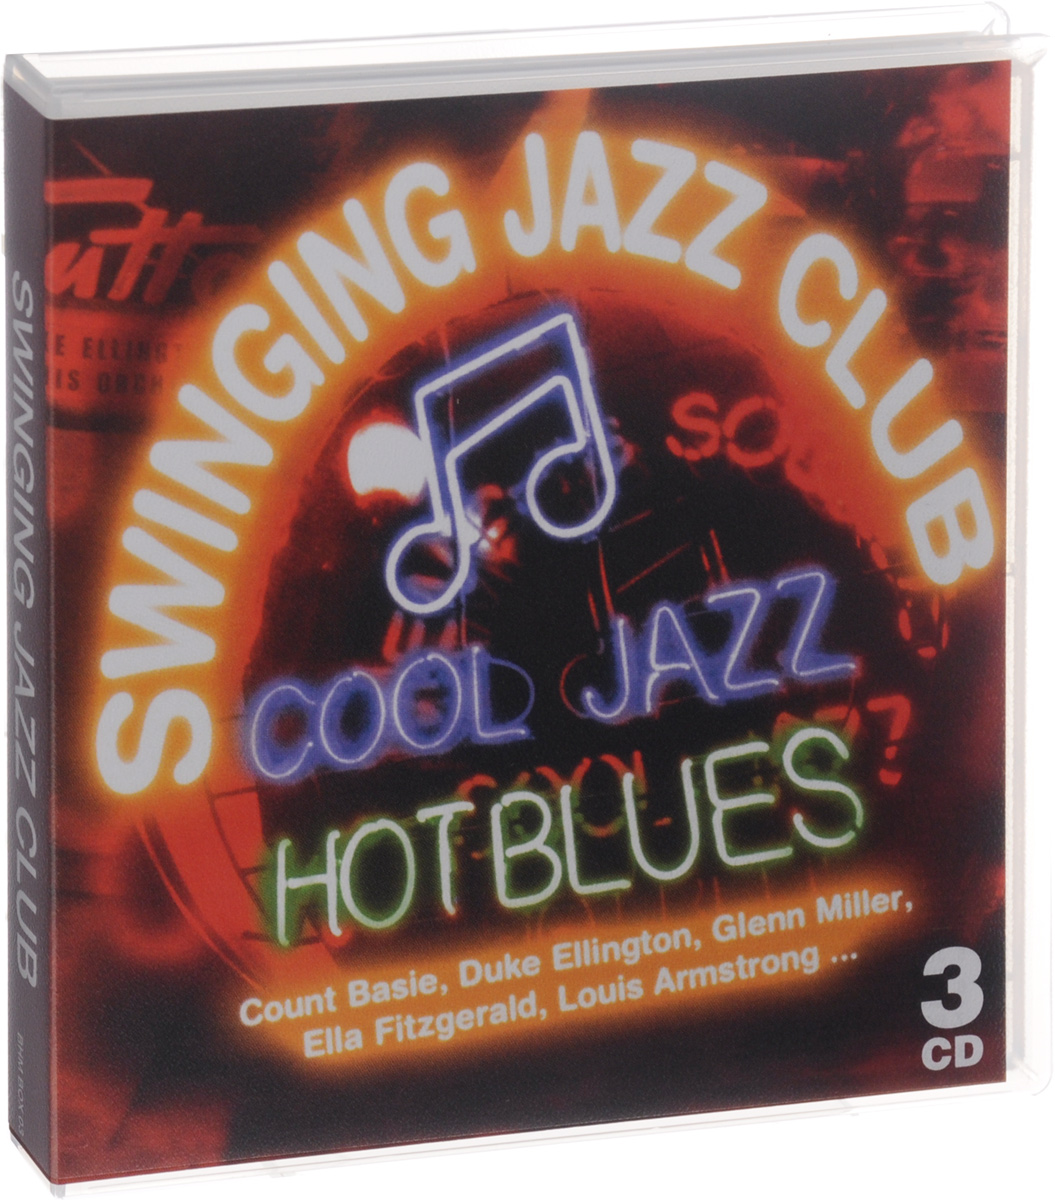 Swinging Jazz Club (3 CD)